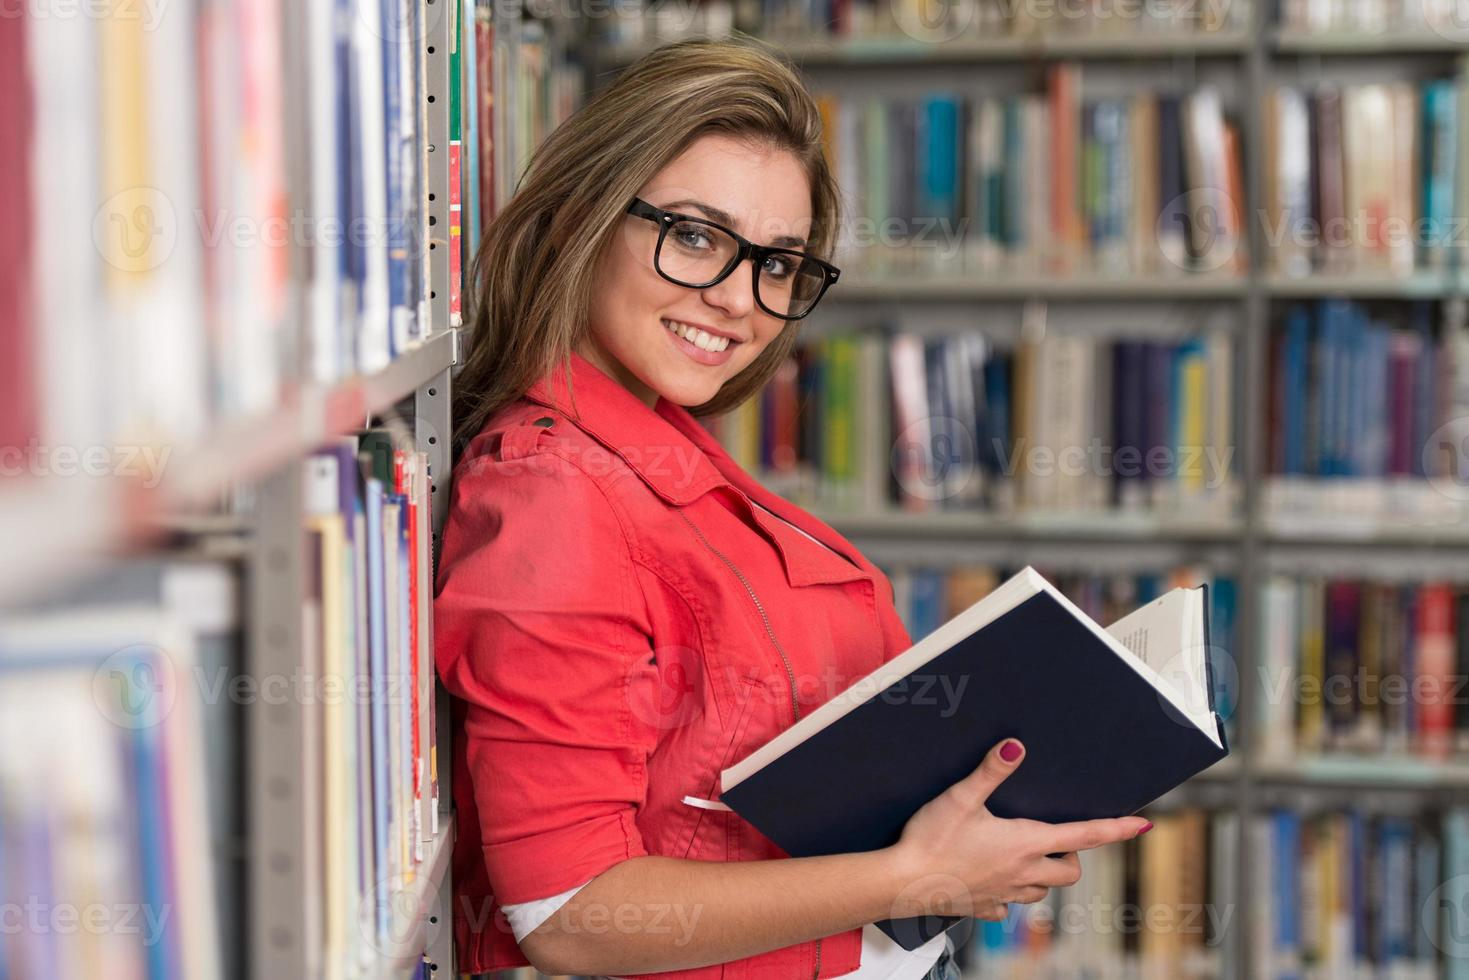 Portrait Of A Student Girl Studying At Library photo